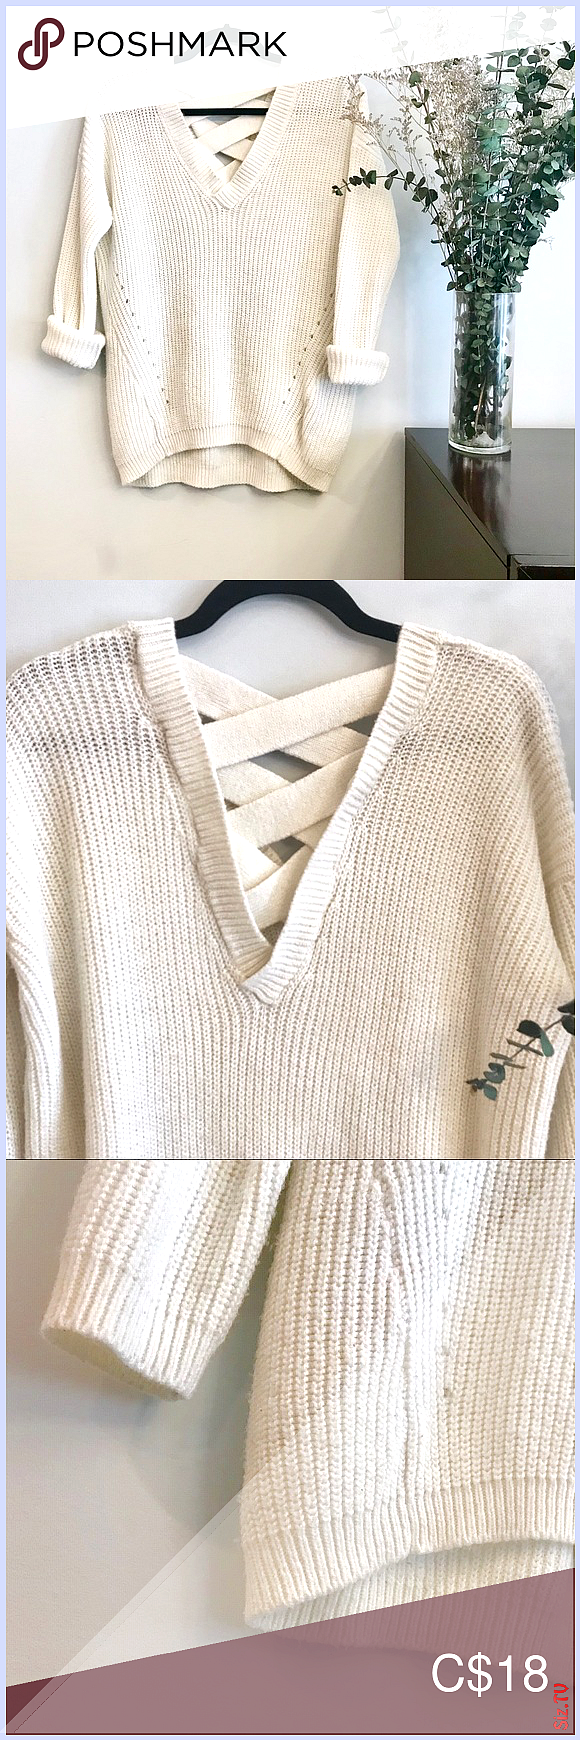 Sweater With Crisscross Back Details Sweater With C Sweater With Crisscross Back Details Sweater With C Judy Simeon Judy Detailed Sweater Sweaters Bun Outfit [ 1740 x 580 Pixel ]